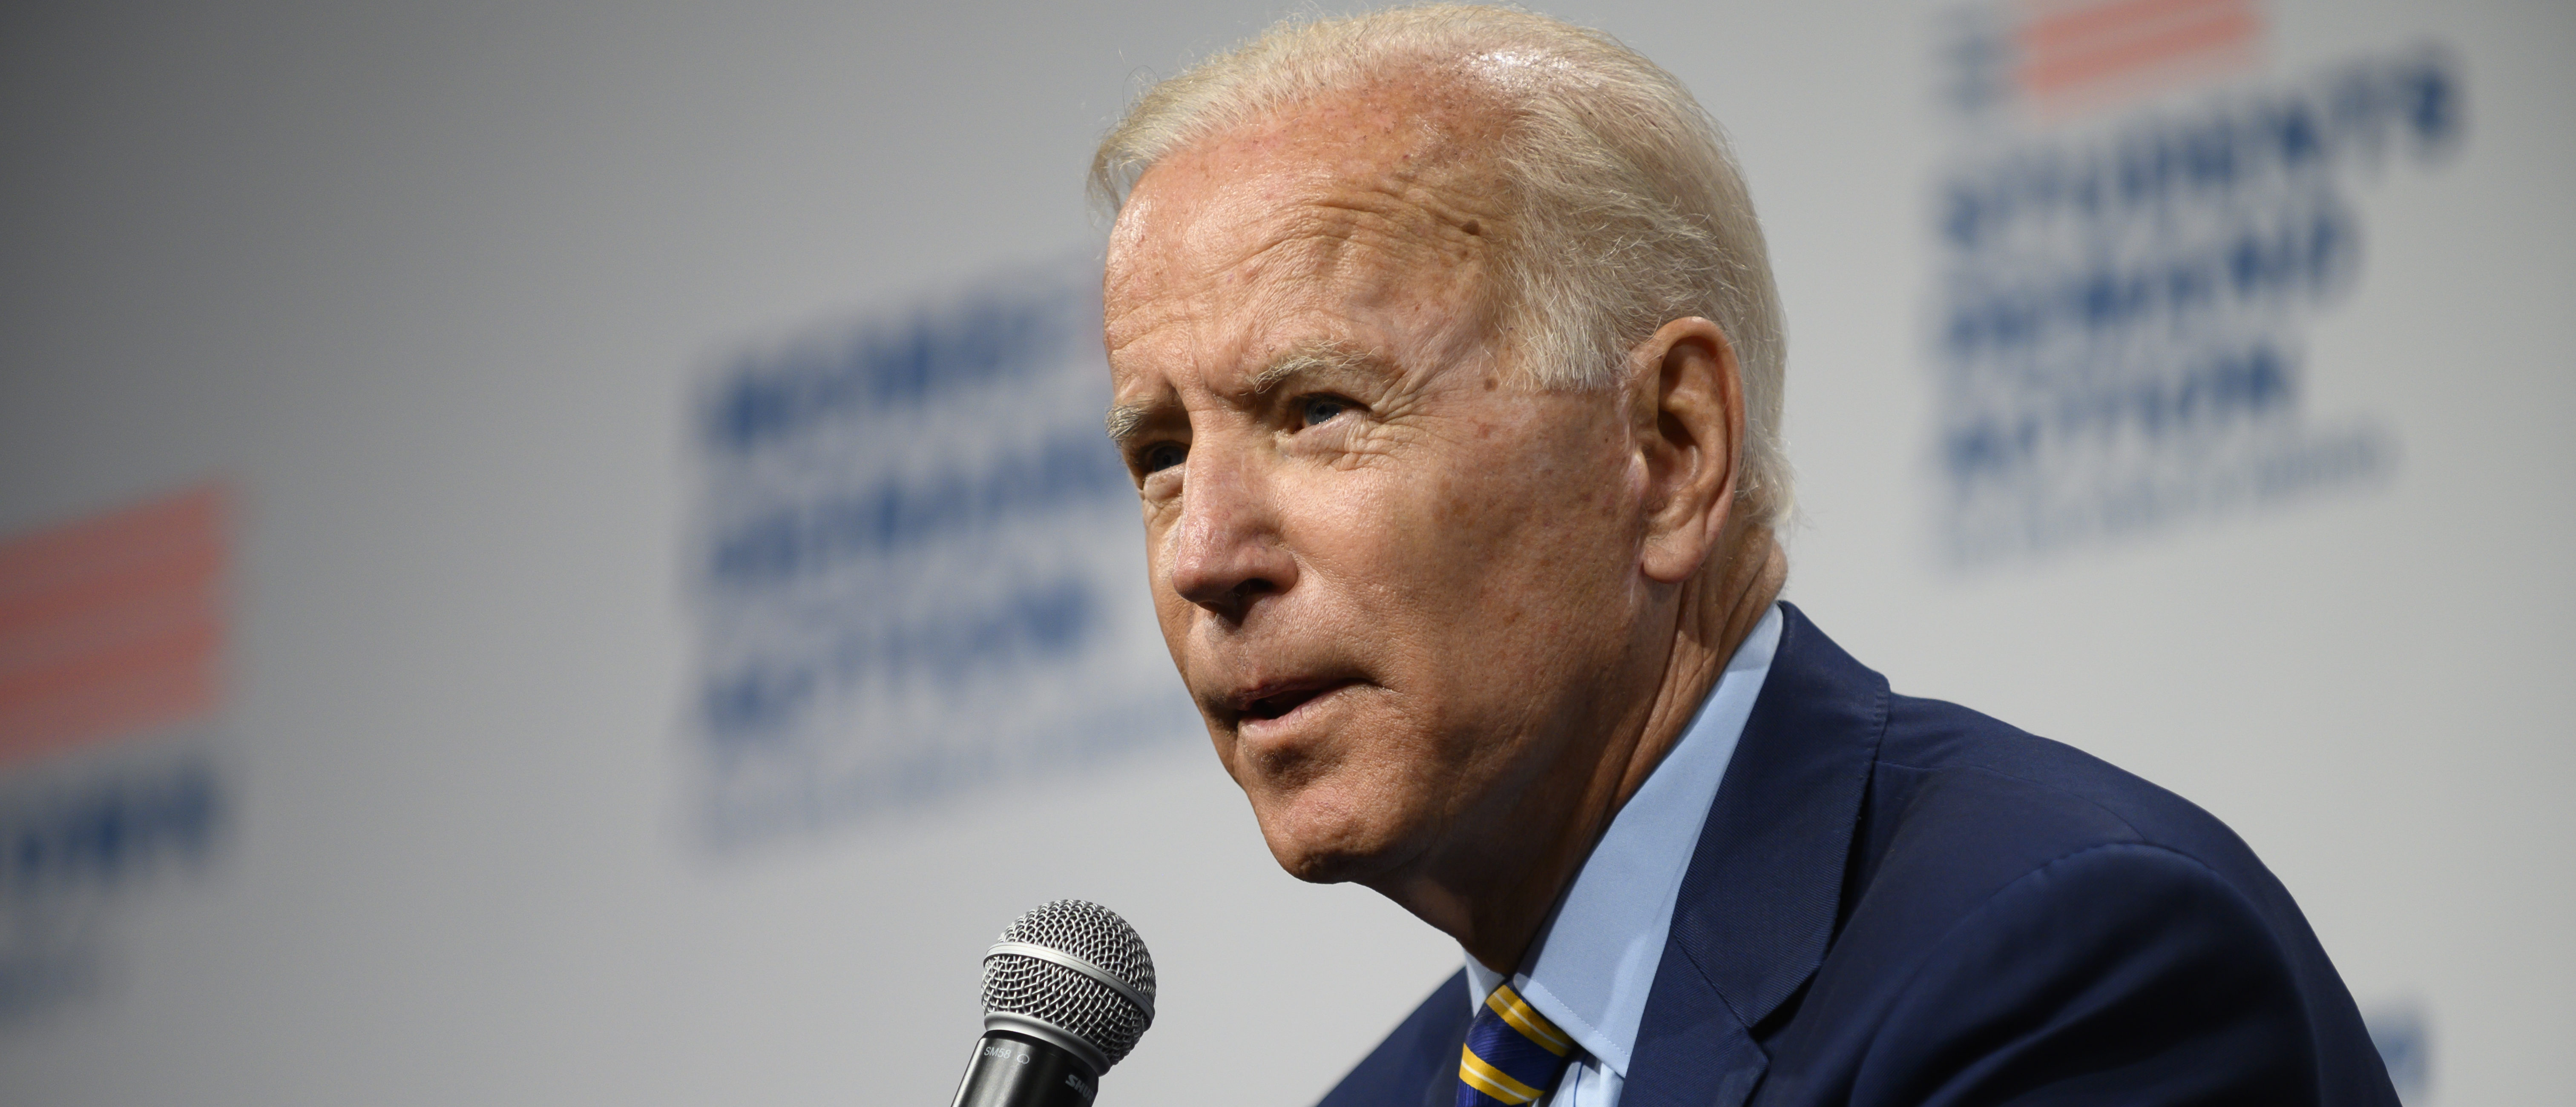 Joe Biden Forgets Which State He's In During New Hampshire Campaign Stop